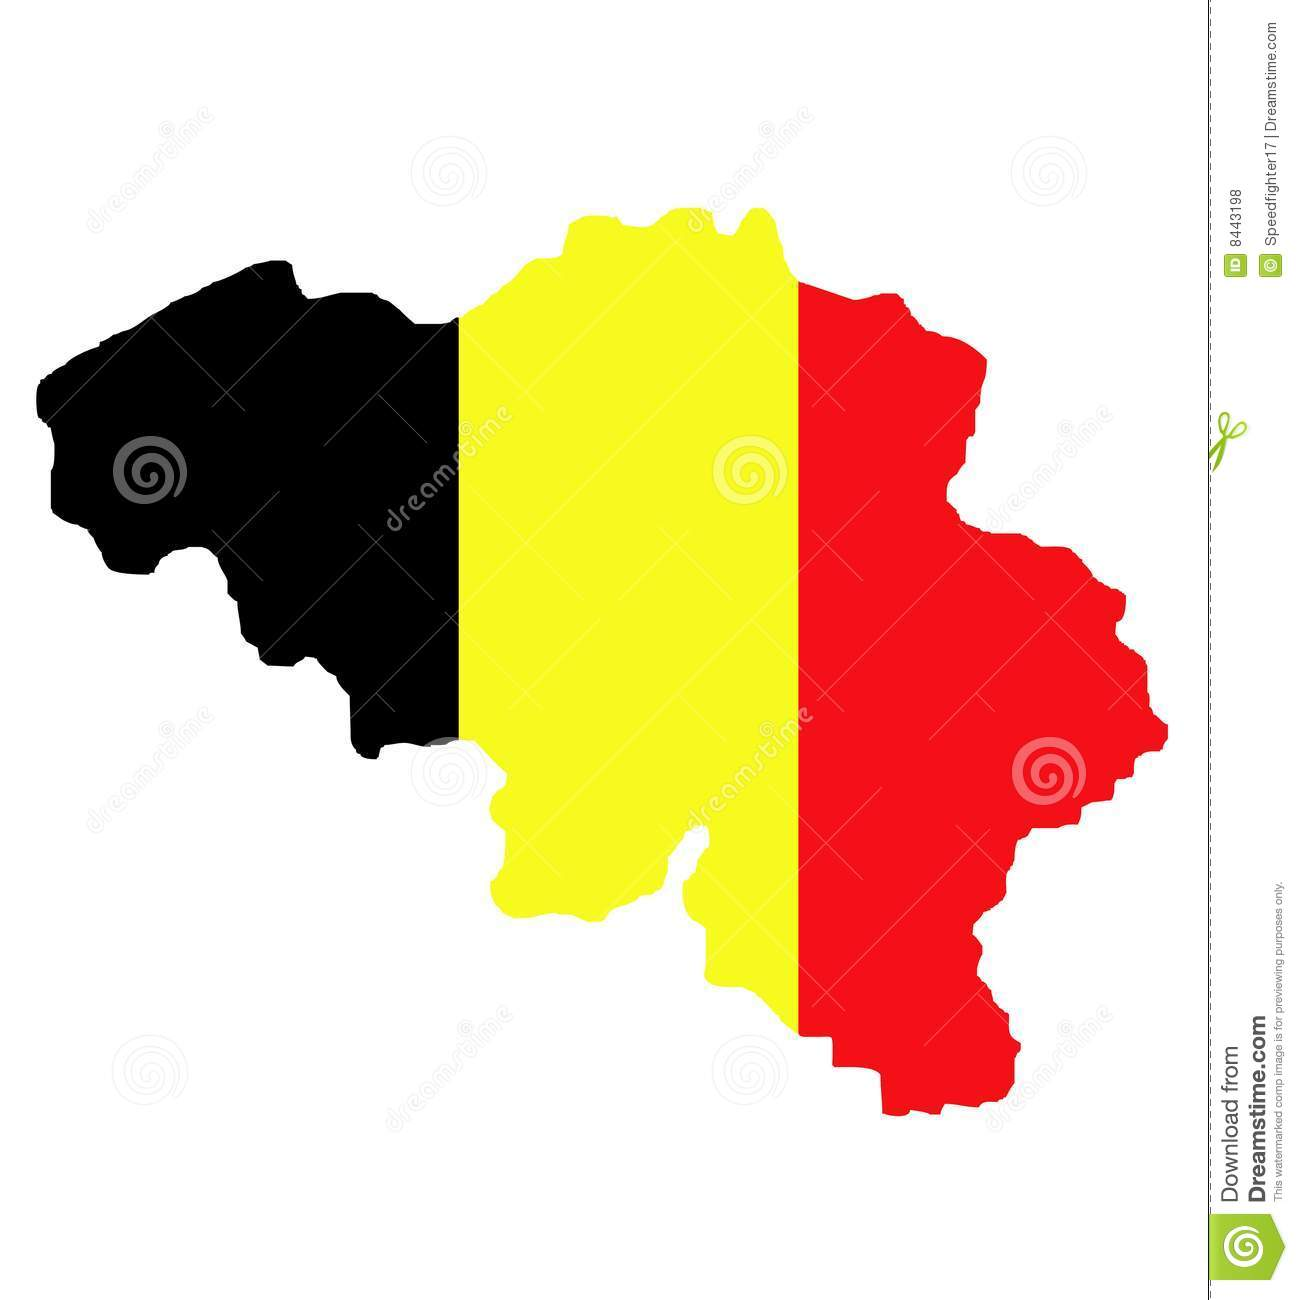 Carte d indicateur de la Belgique